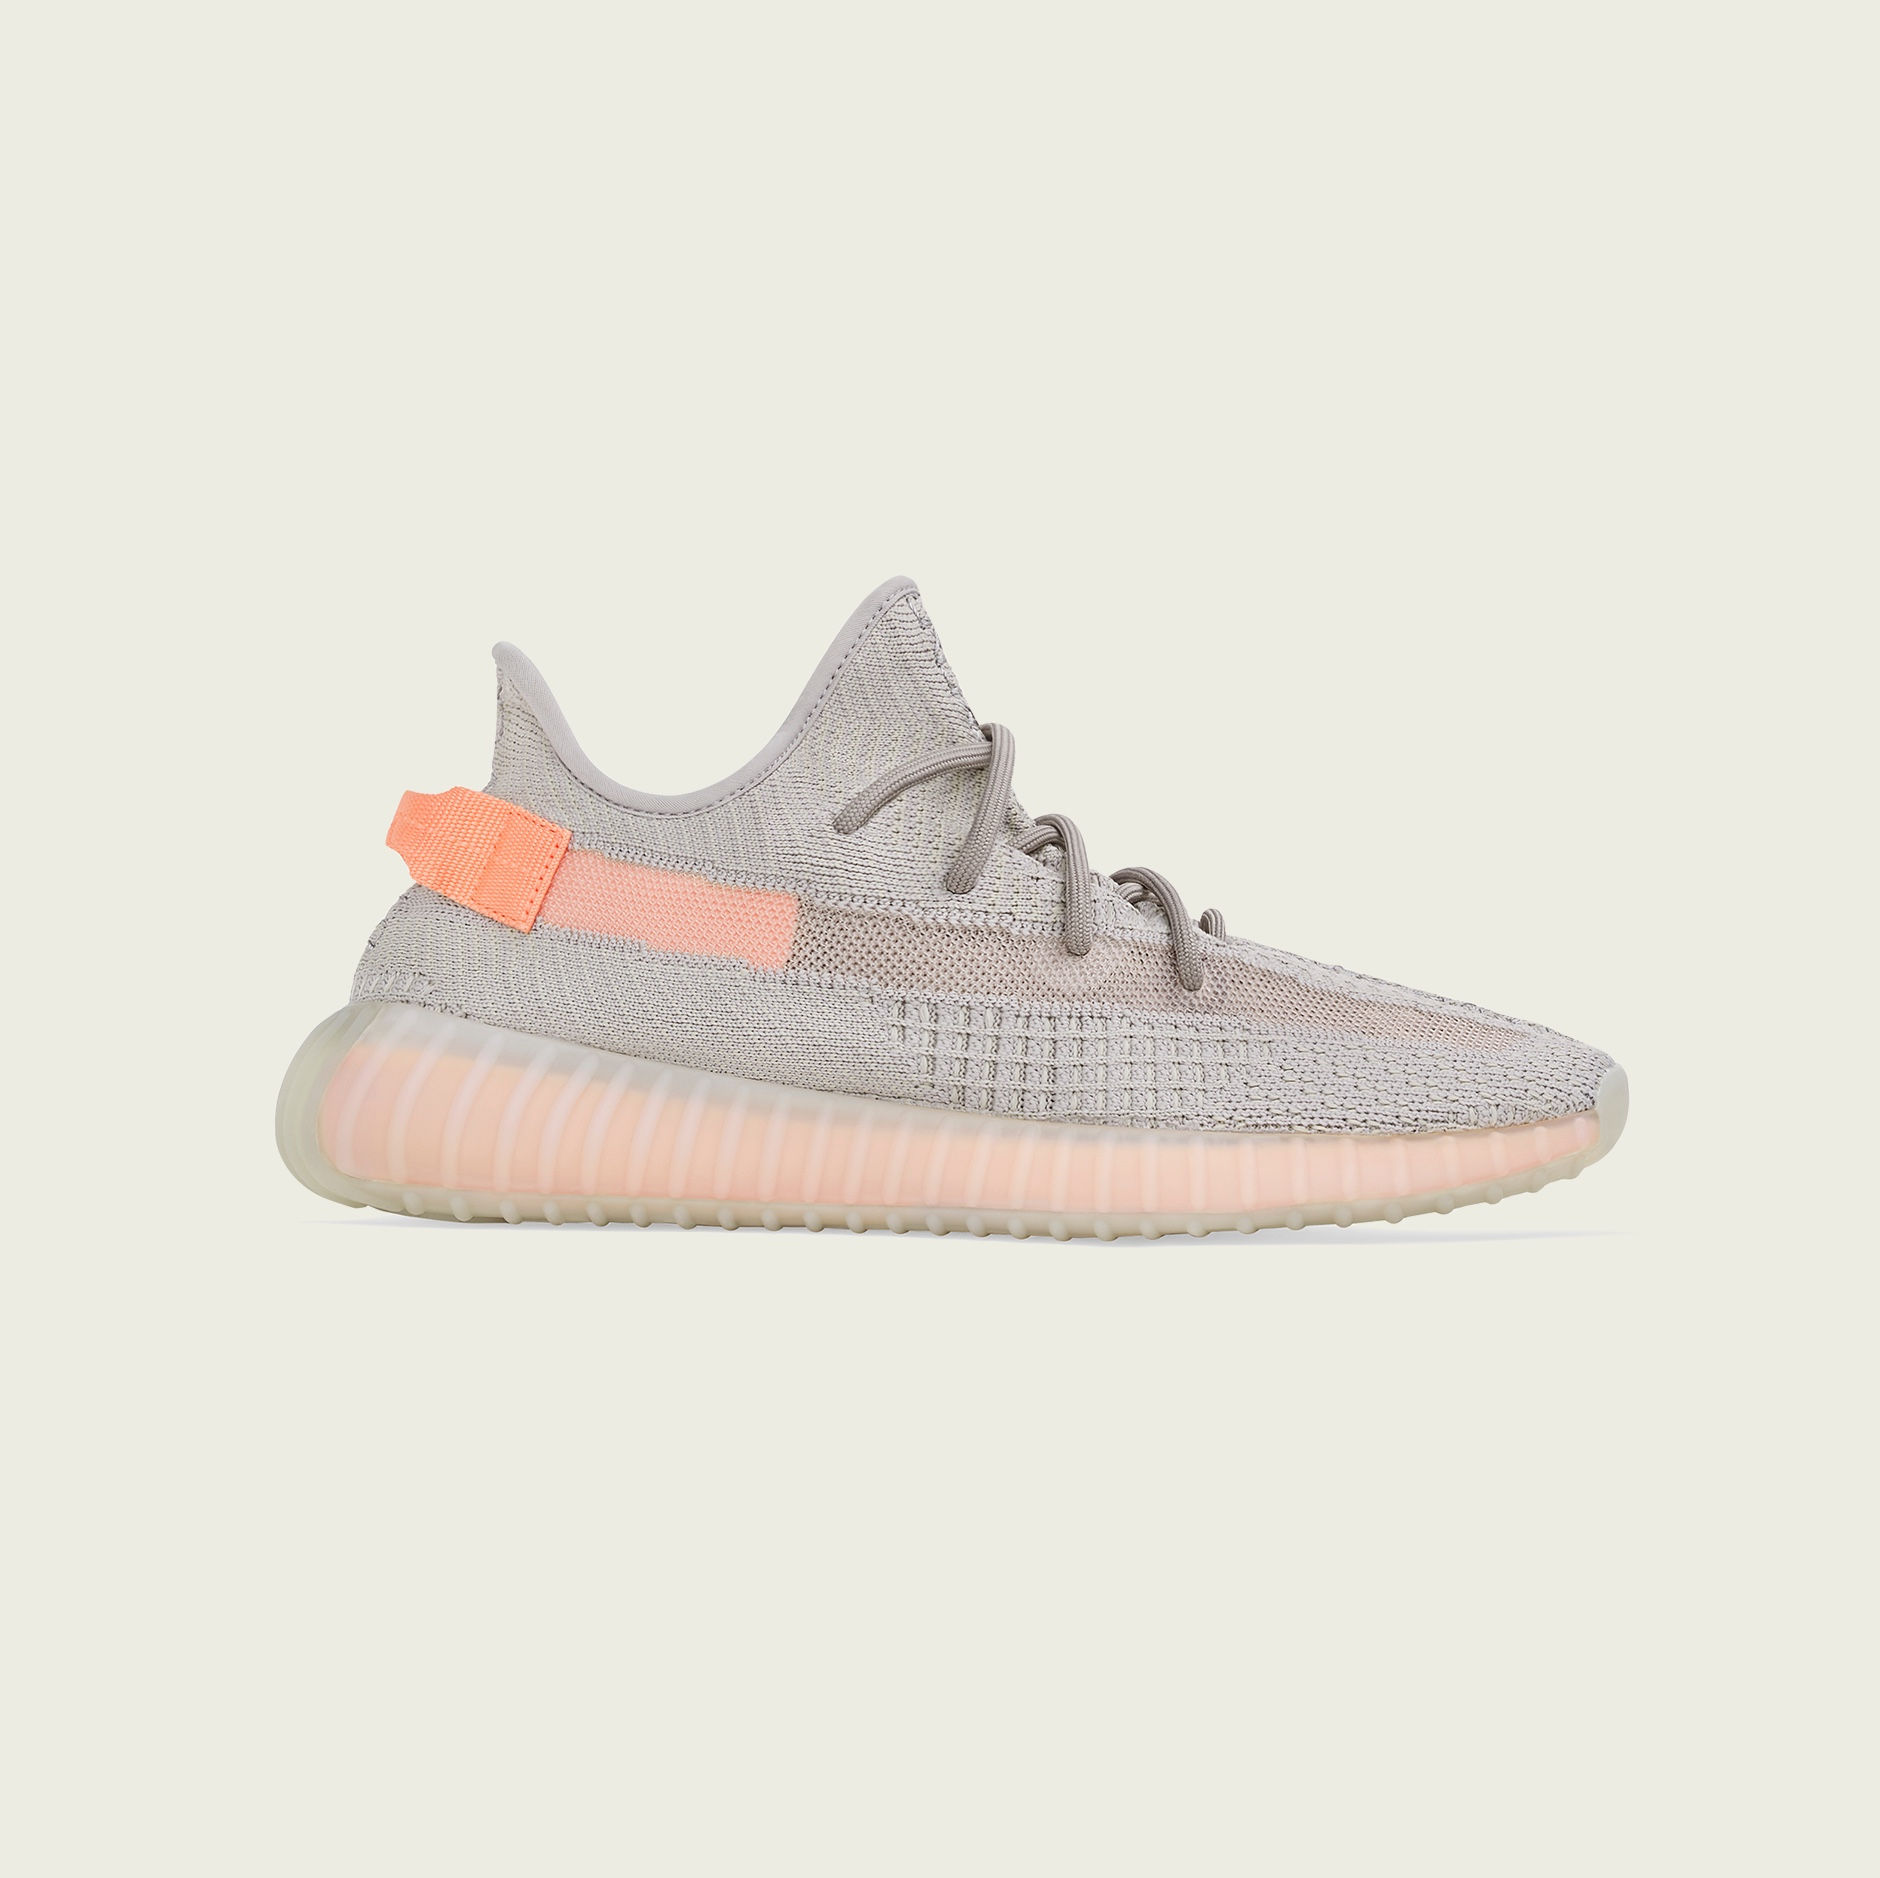 adidas Originals YEEZY BOOST 350 v2 'True Form' | SOLD-OUT